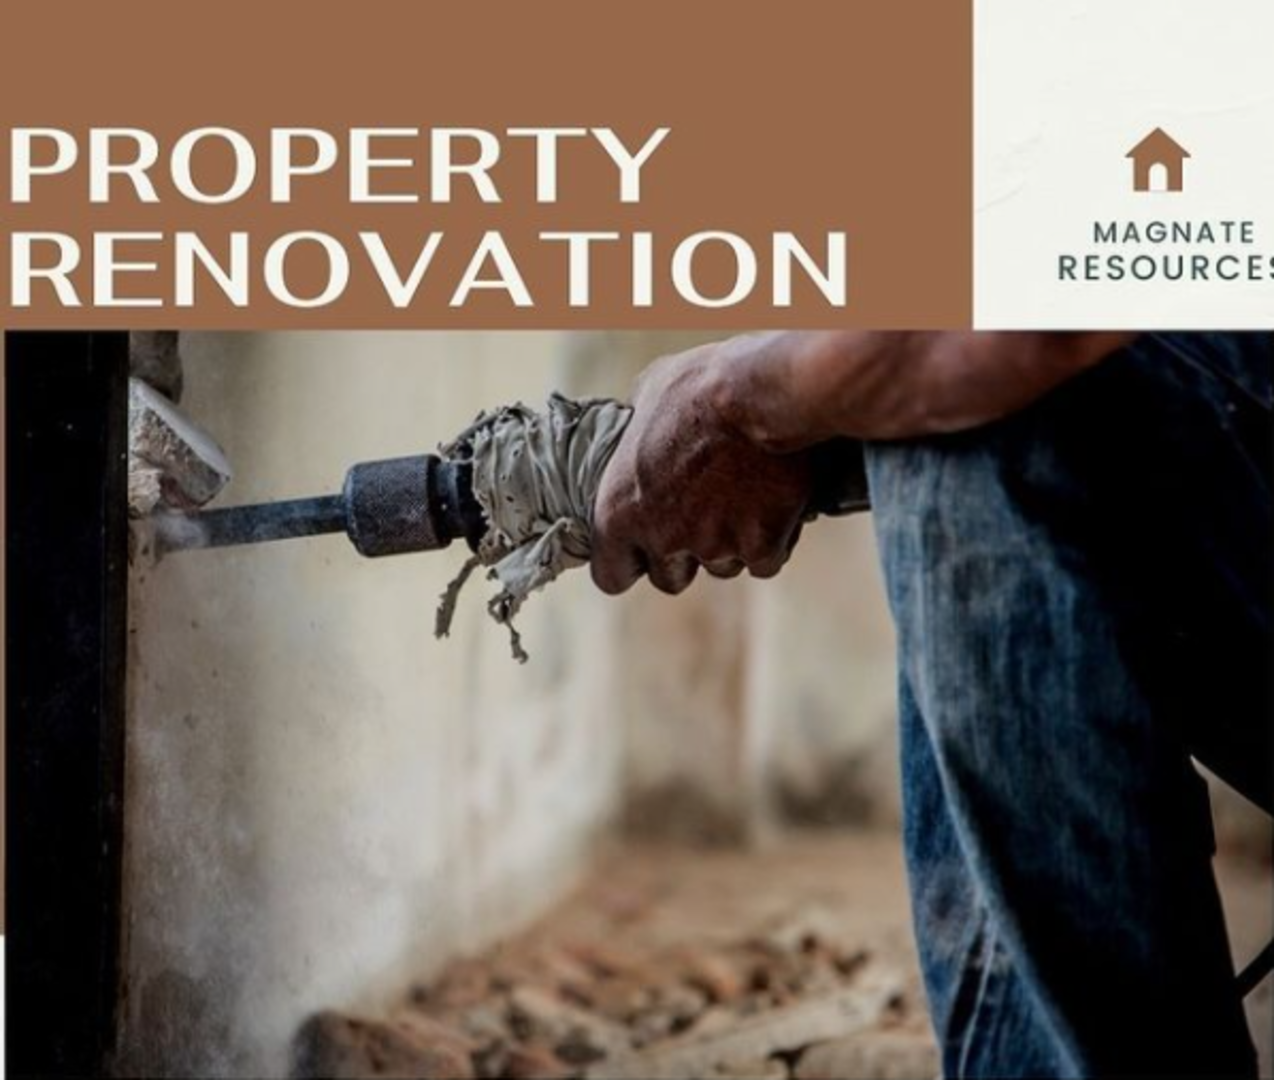 MAGNATE RESOURCES LIMITED Property Renovation